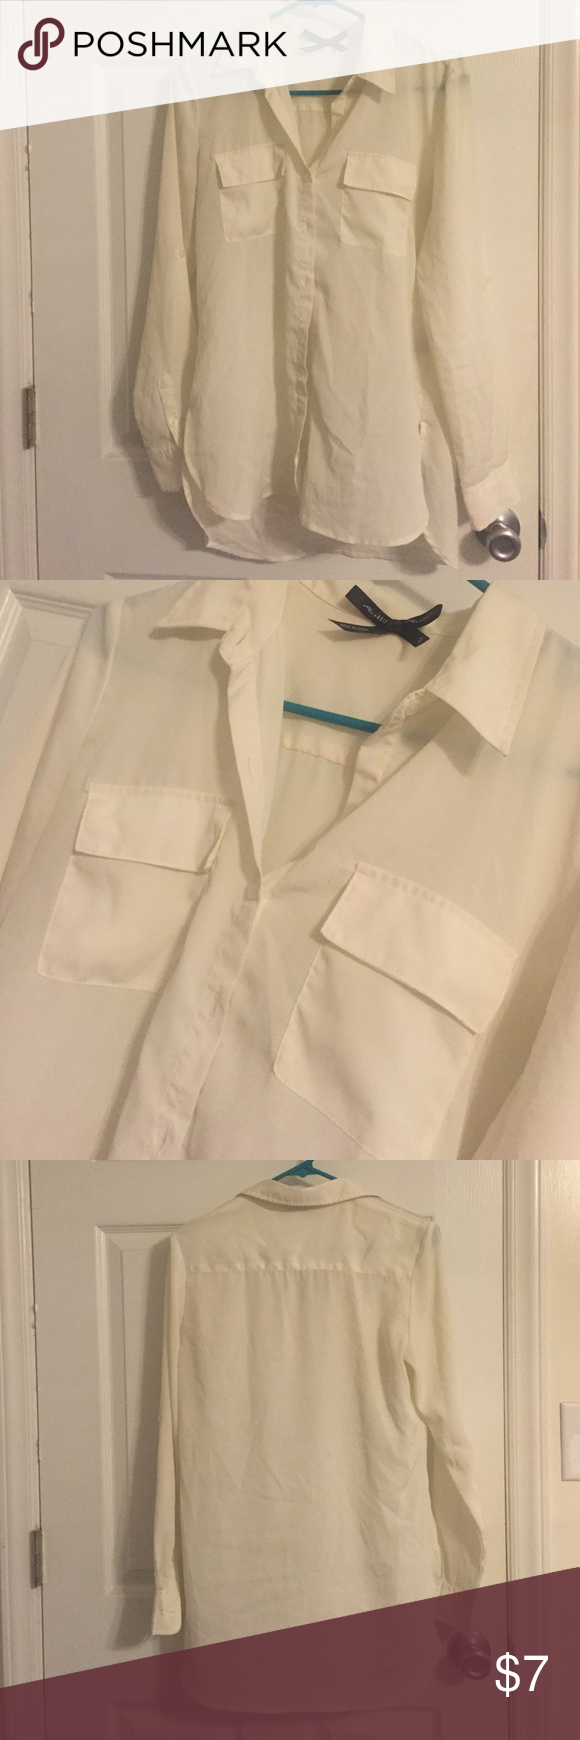 Button Up Off White Blouse Super cute! Sleeves roll up and button. Full button up in front, has 2 front pockets. Tops